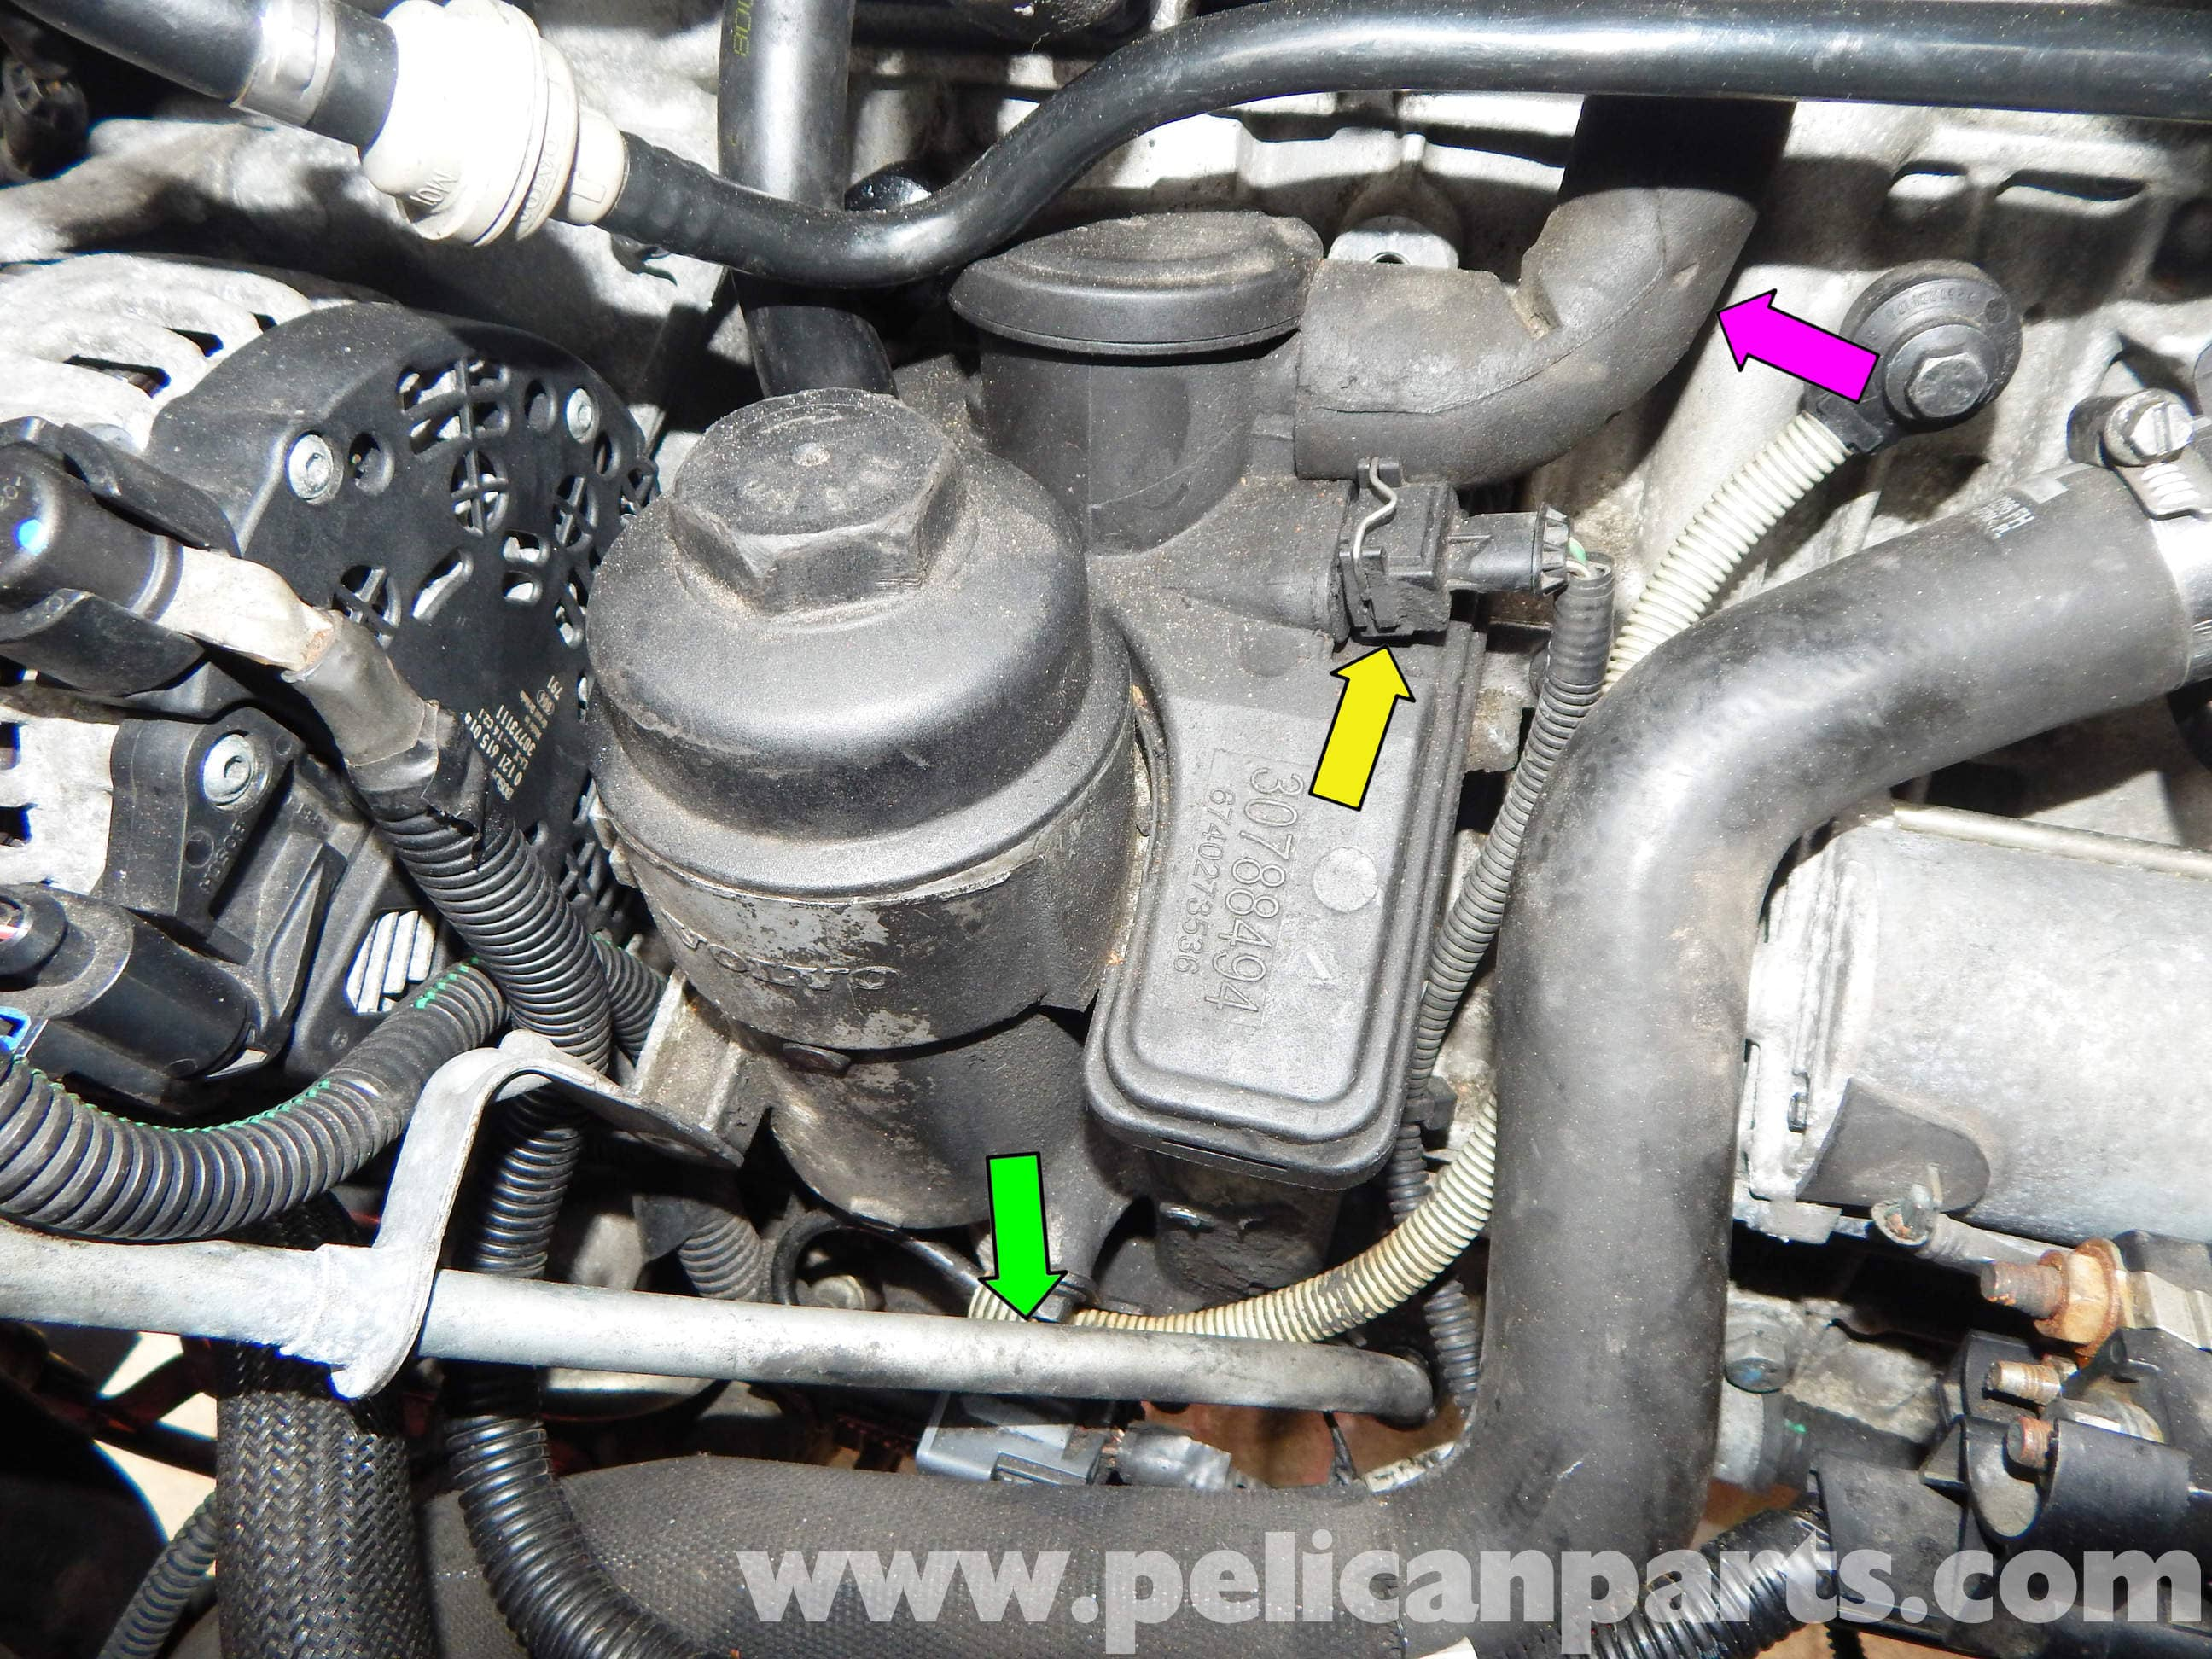 Volvo C30 Oil Filter Housing Replacement | C30 T5 (2008-2013), C30 ...